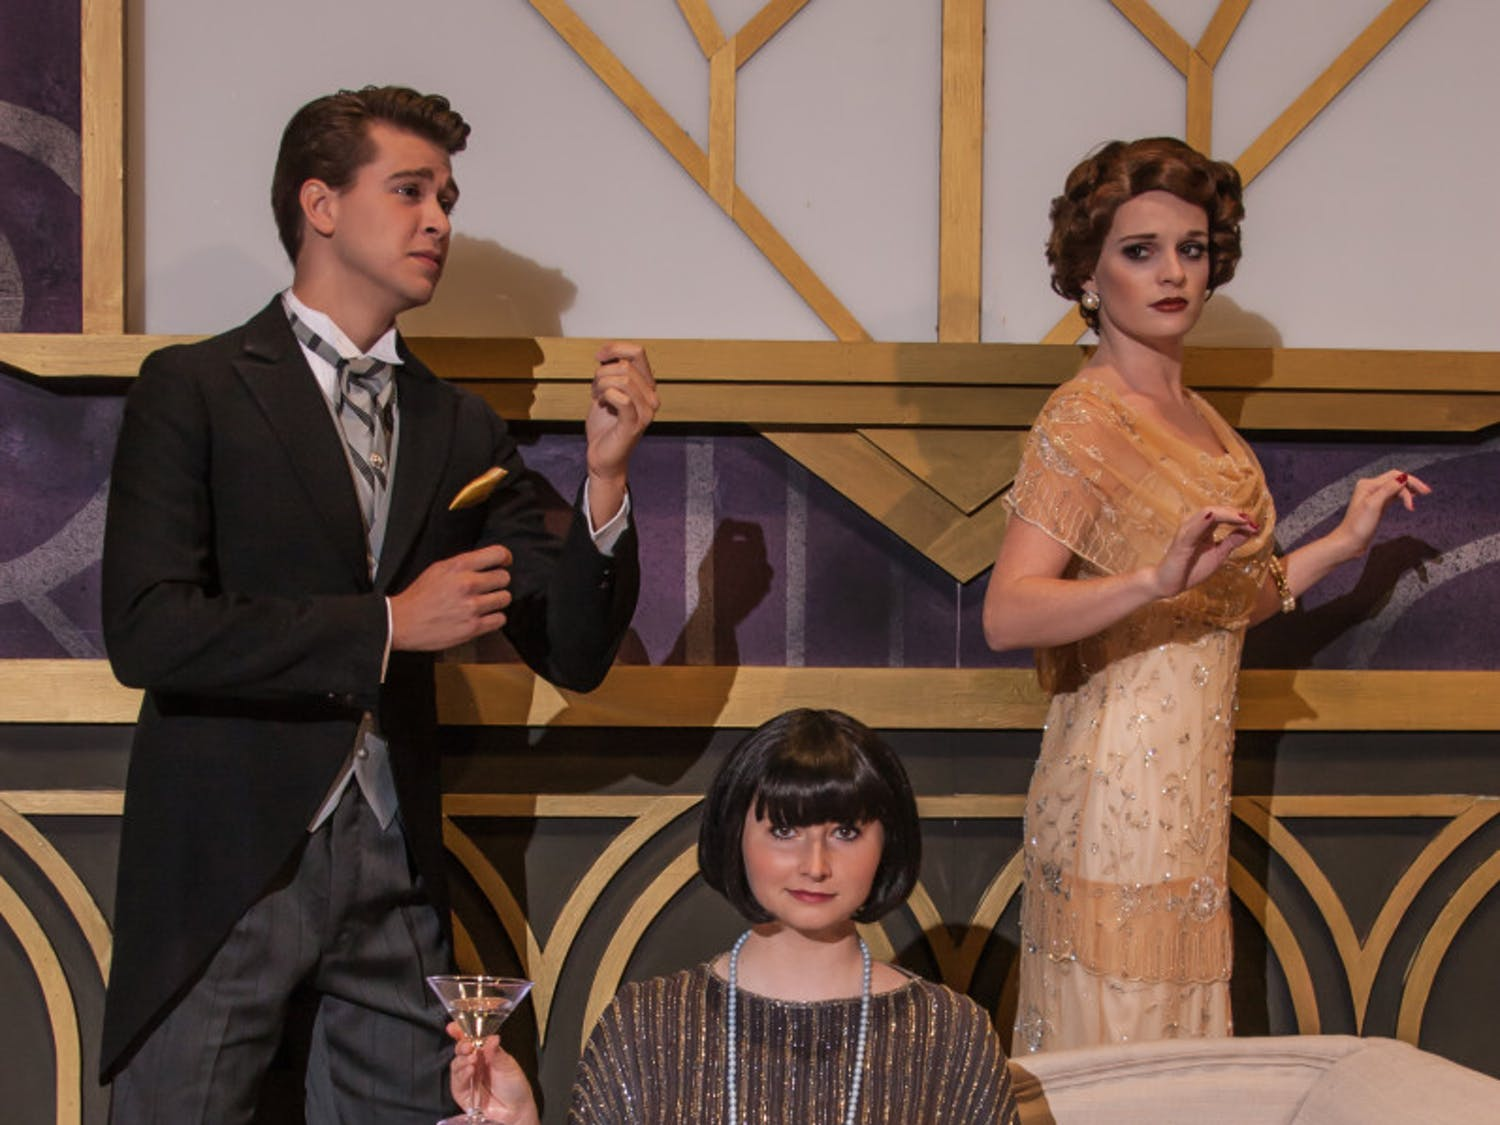 """The UF School of Theatre and Dance will premiere its fall musical, """"The Drowsy Chaperone,"""" at 7:30 p.m. on Oct. 15, 2015."""